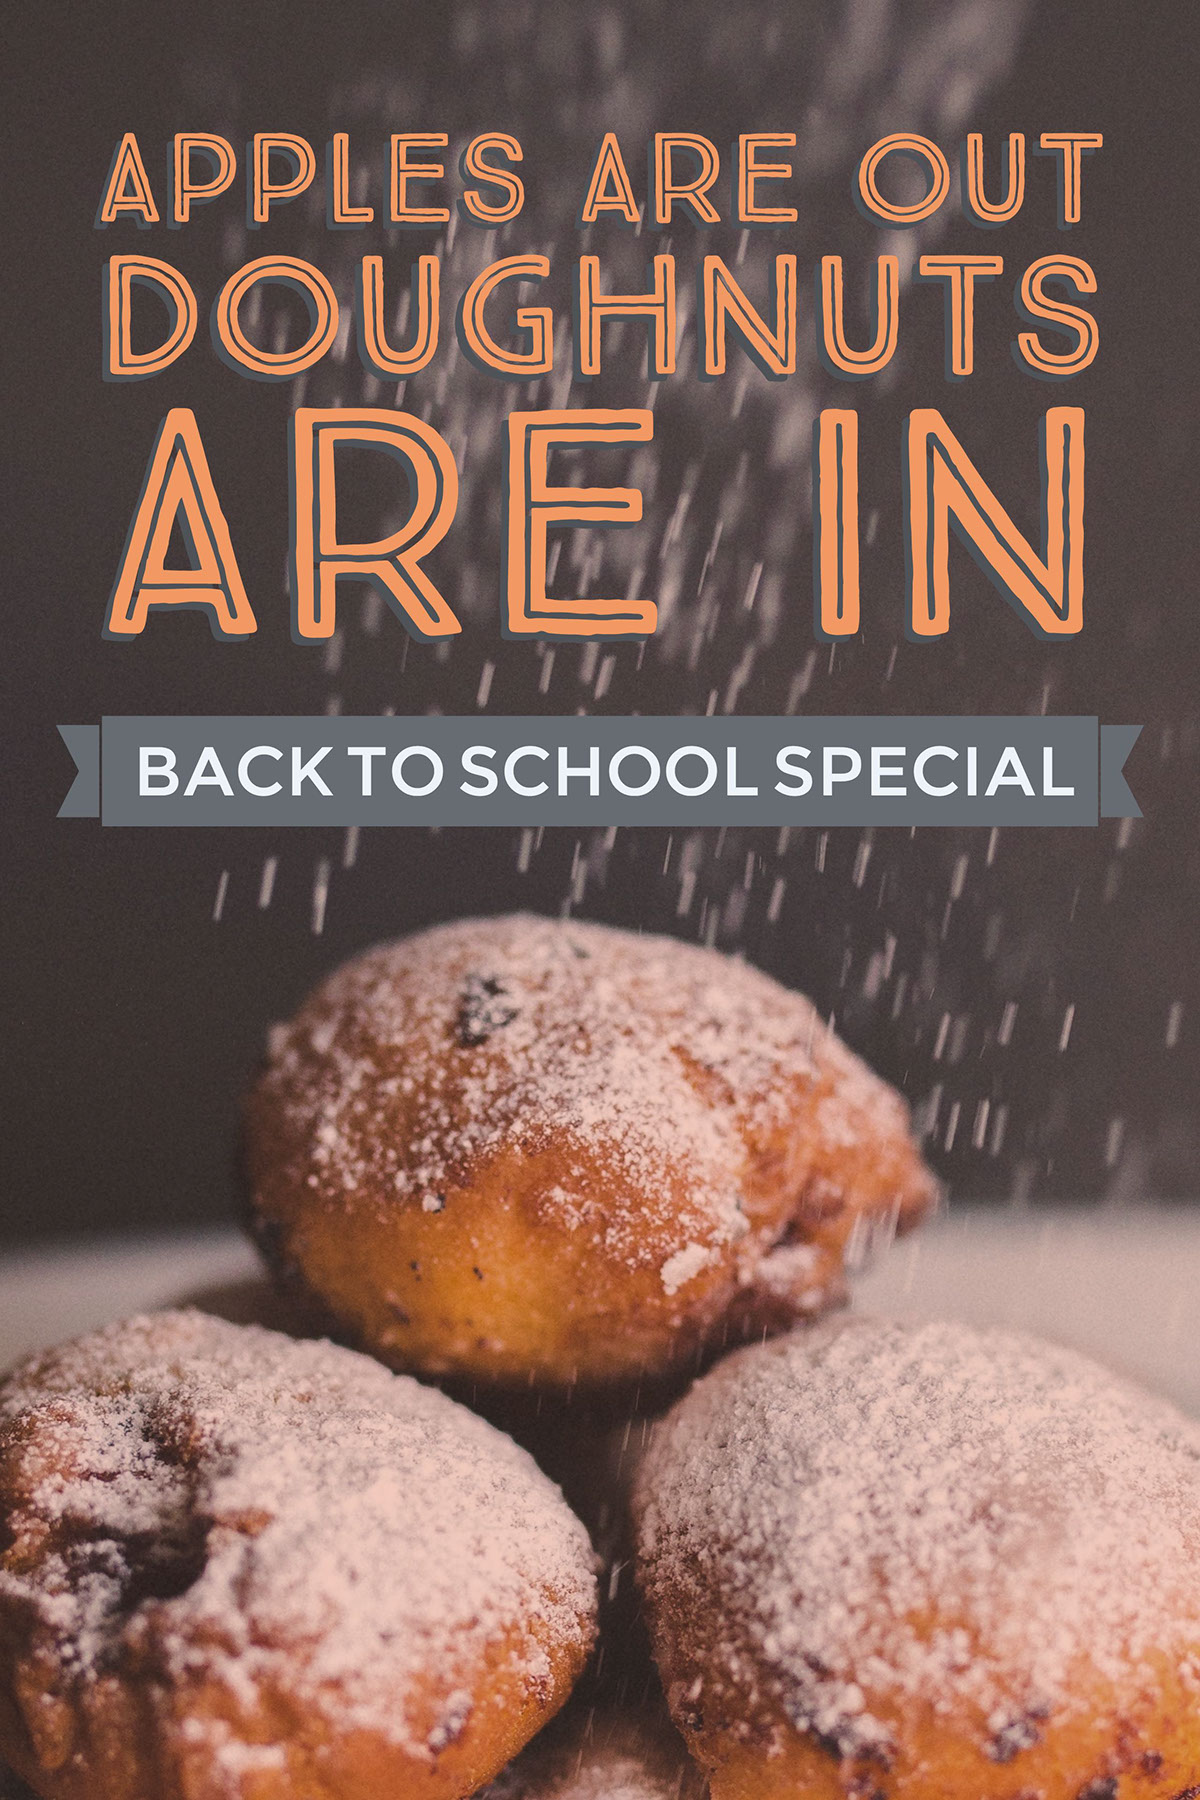 Apples are out Doughnuts are in Apples are out Doughnuts are in Back to school special